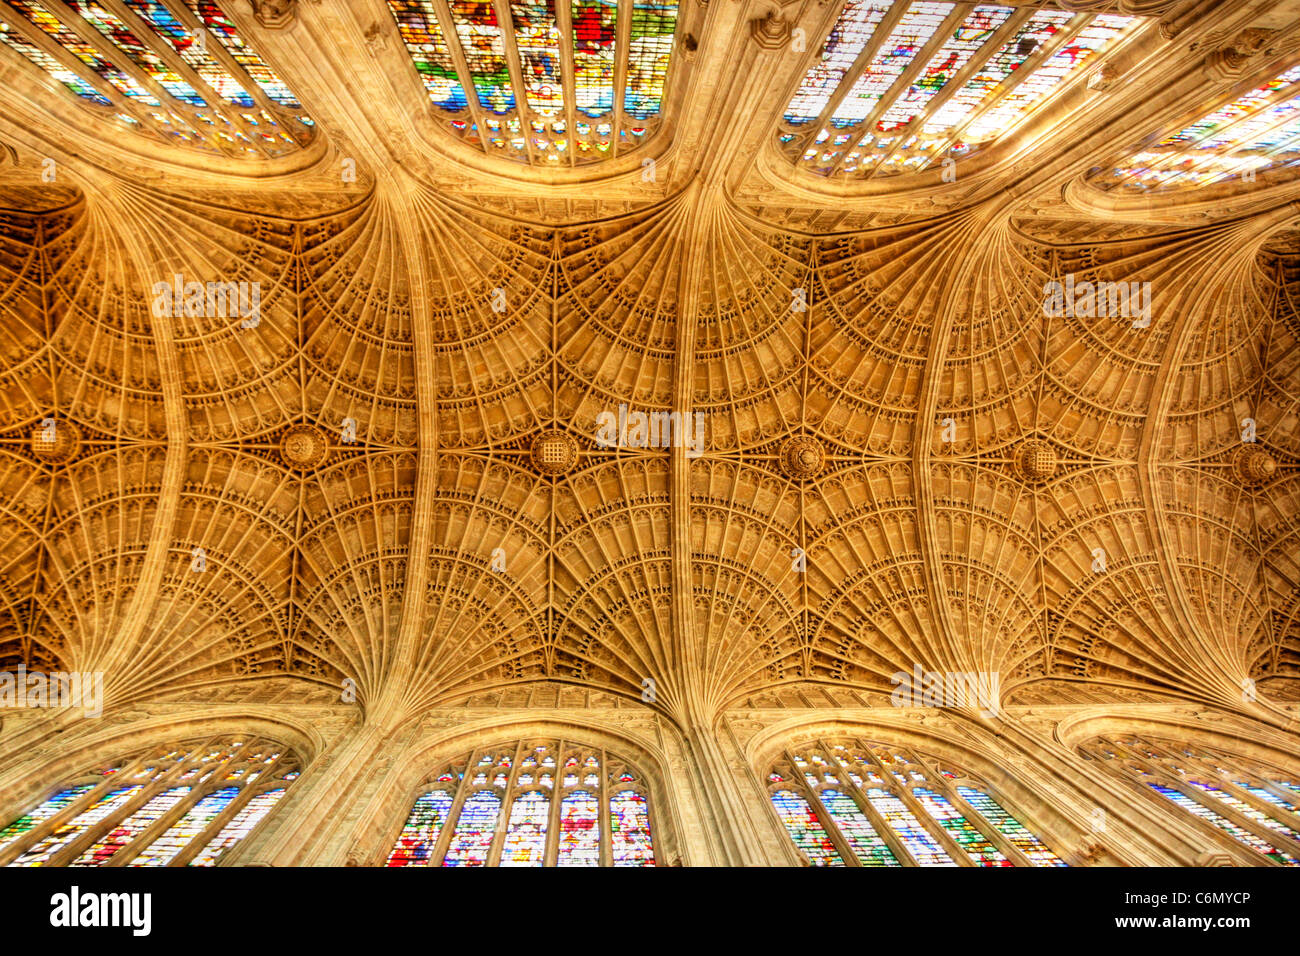 View from below of the fan vaulted ceiling at Kings college, Cambridge University - Stock Image